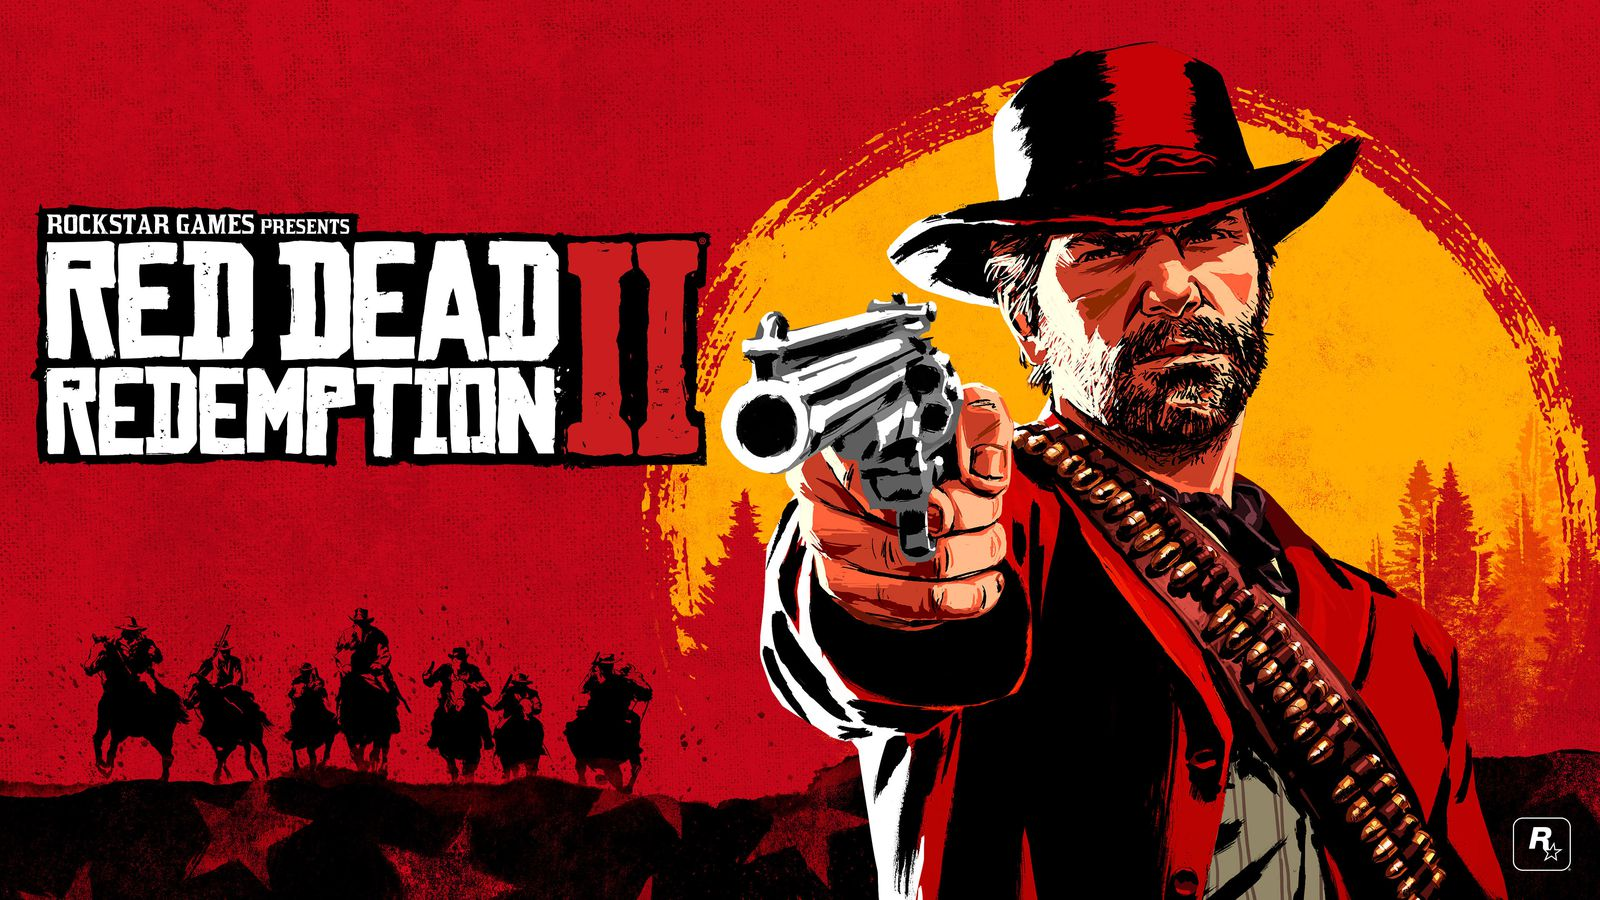 Bonus Round: Red Dead Redemption 2 is coming soon!